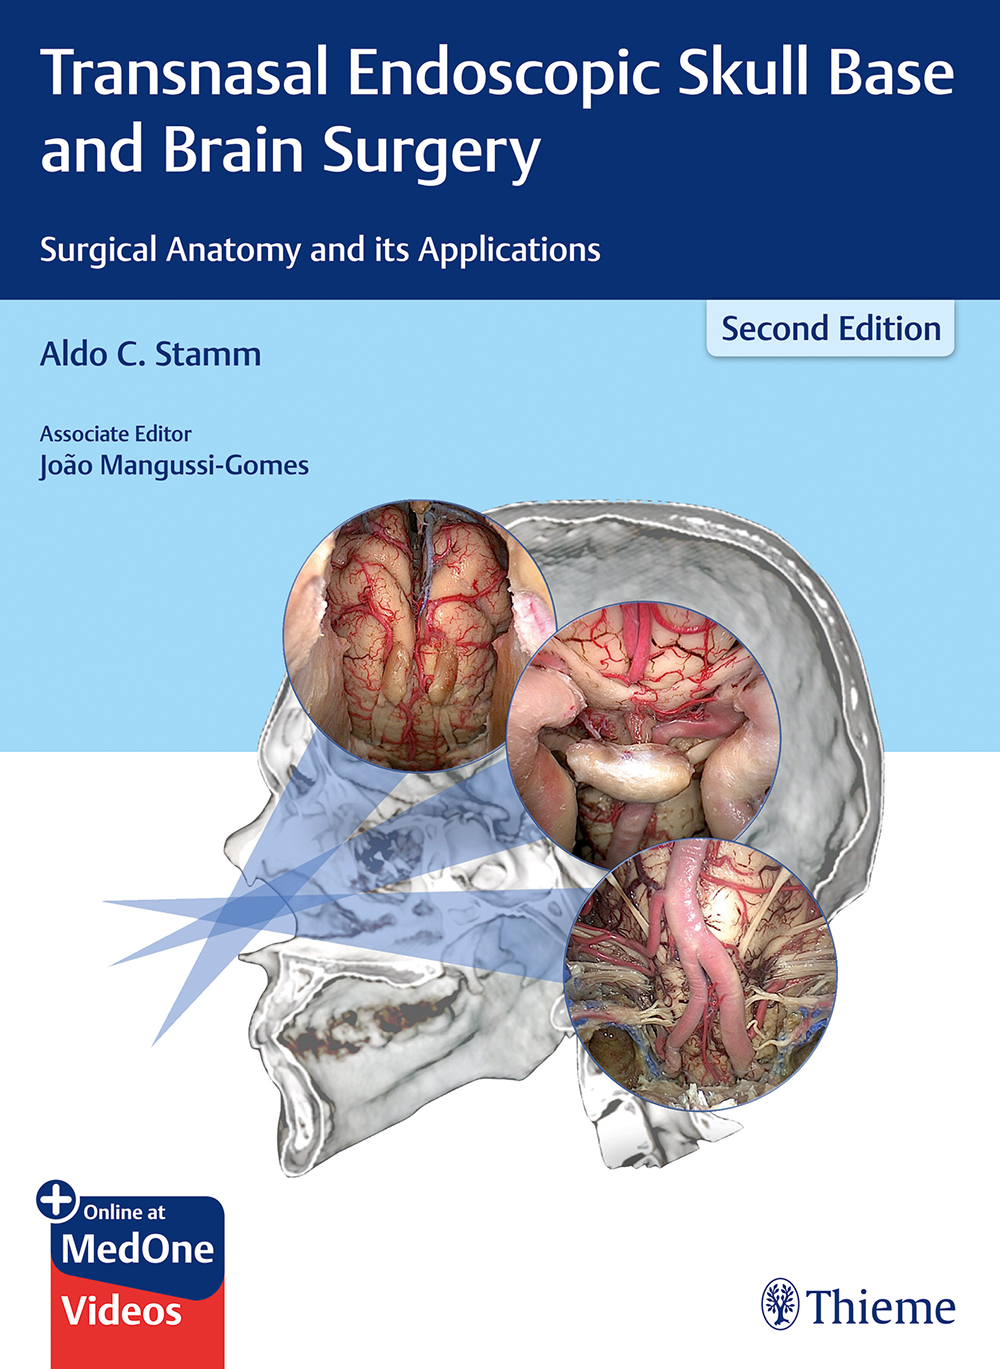 Transnasal Endoscopic Skull Base and Brain Surgery: Surgical Anatomy and its Applications, 2nd edn